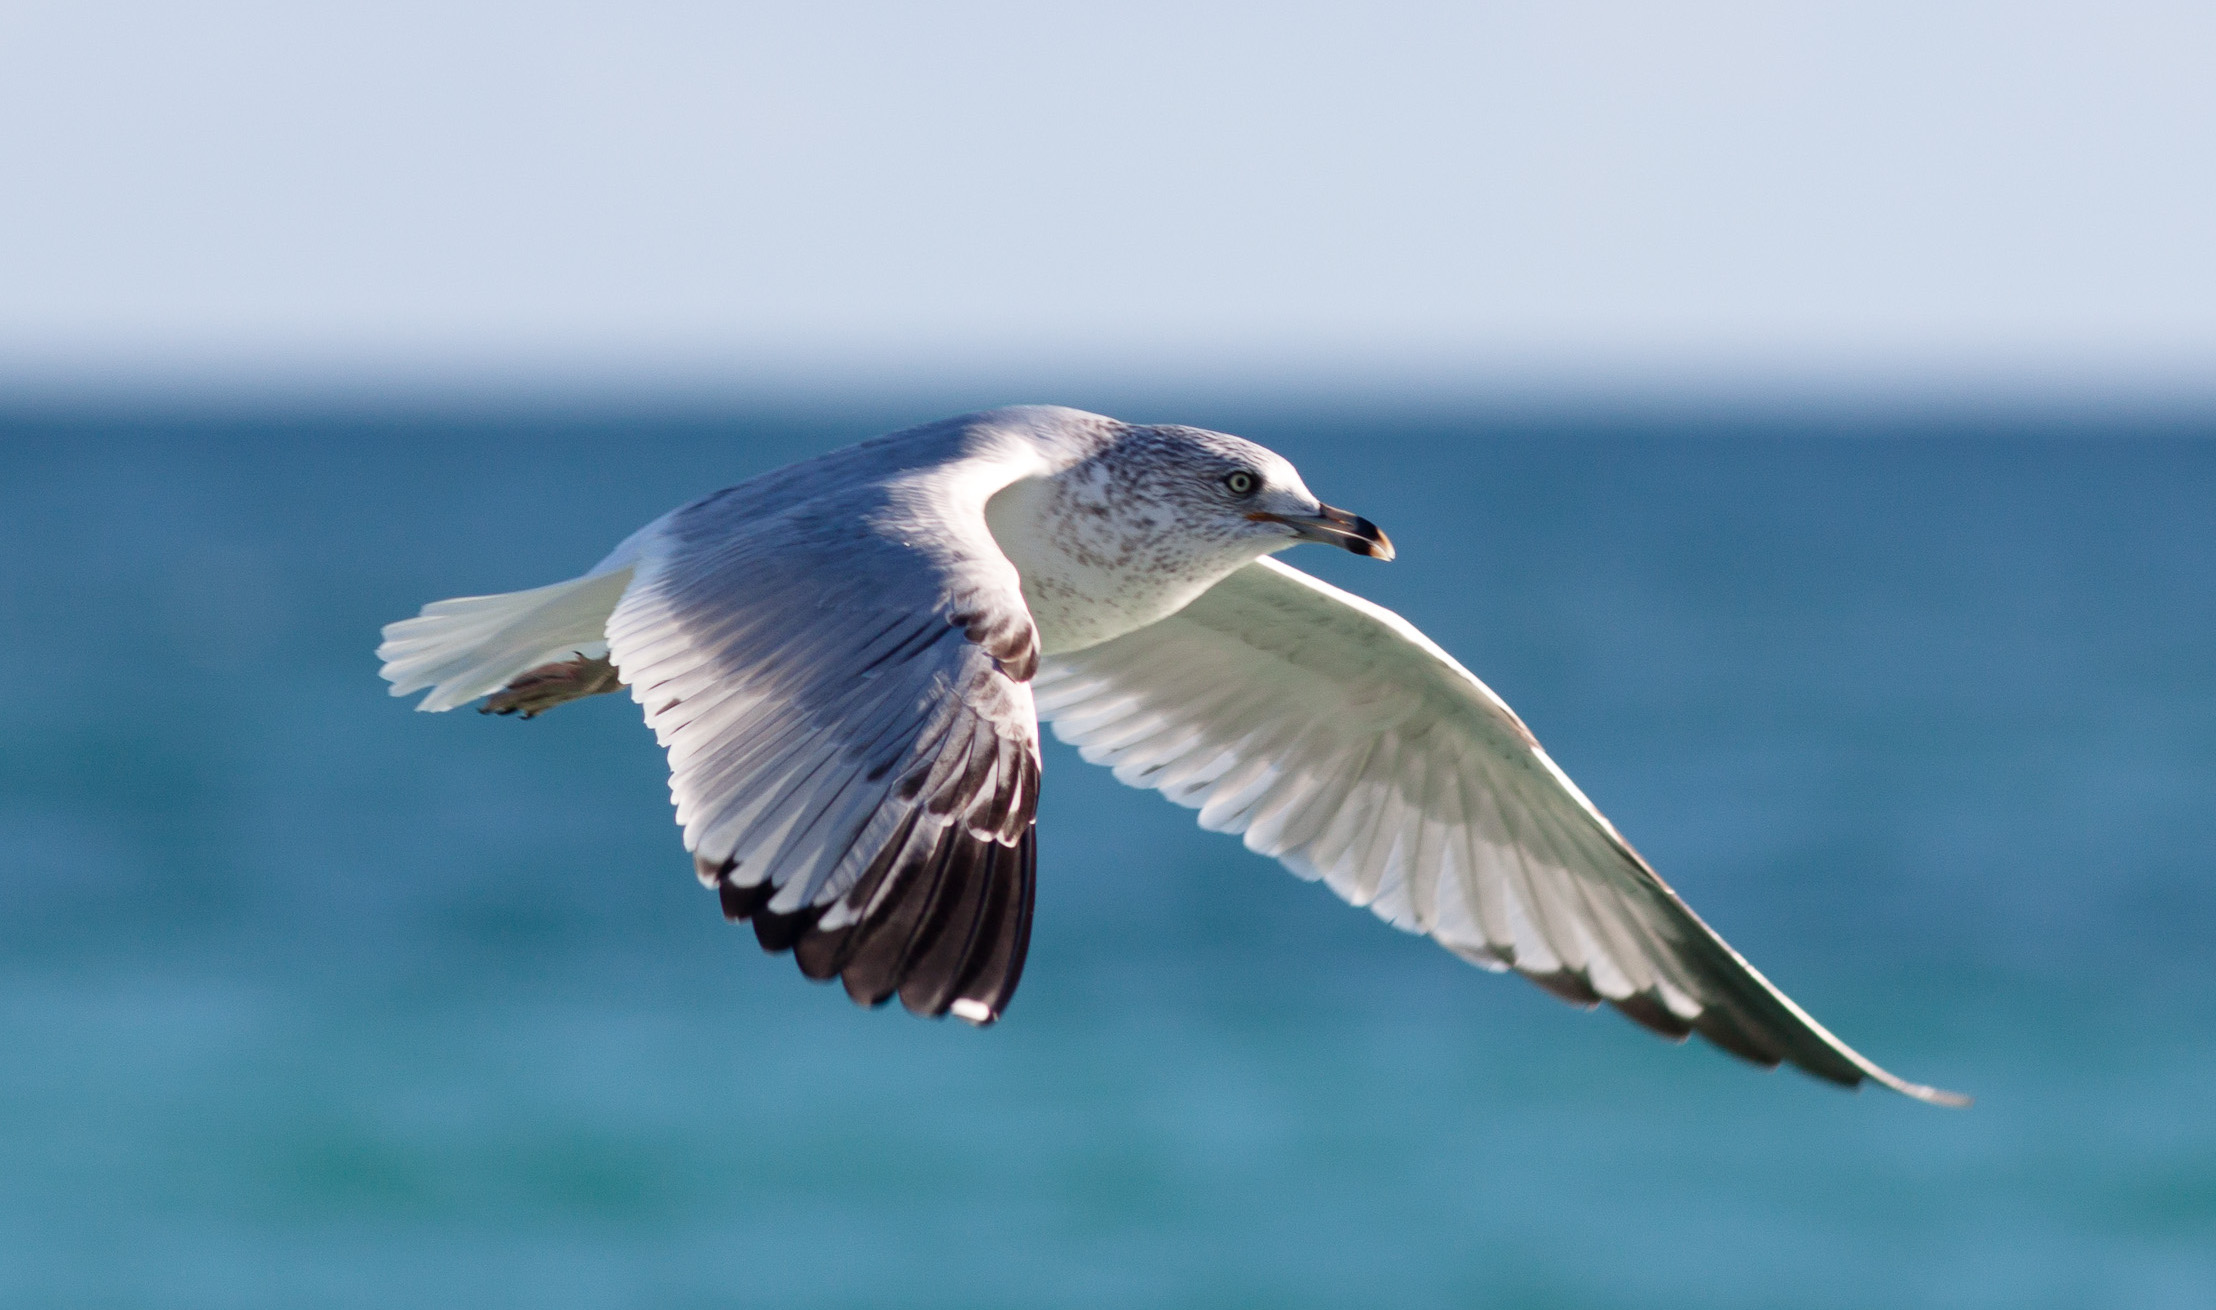 Seagull by Fil.Al is lincensed under CC BY 2.0